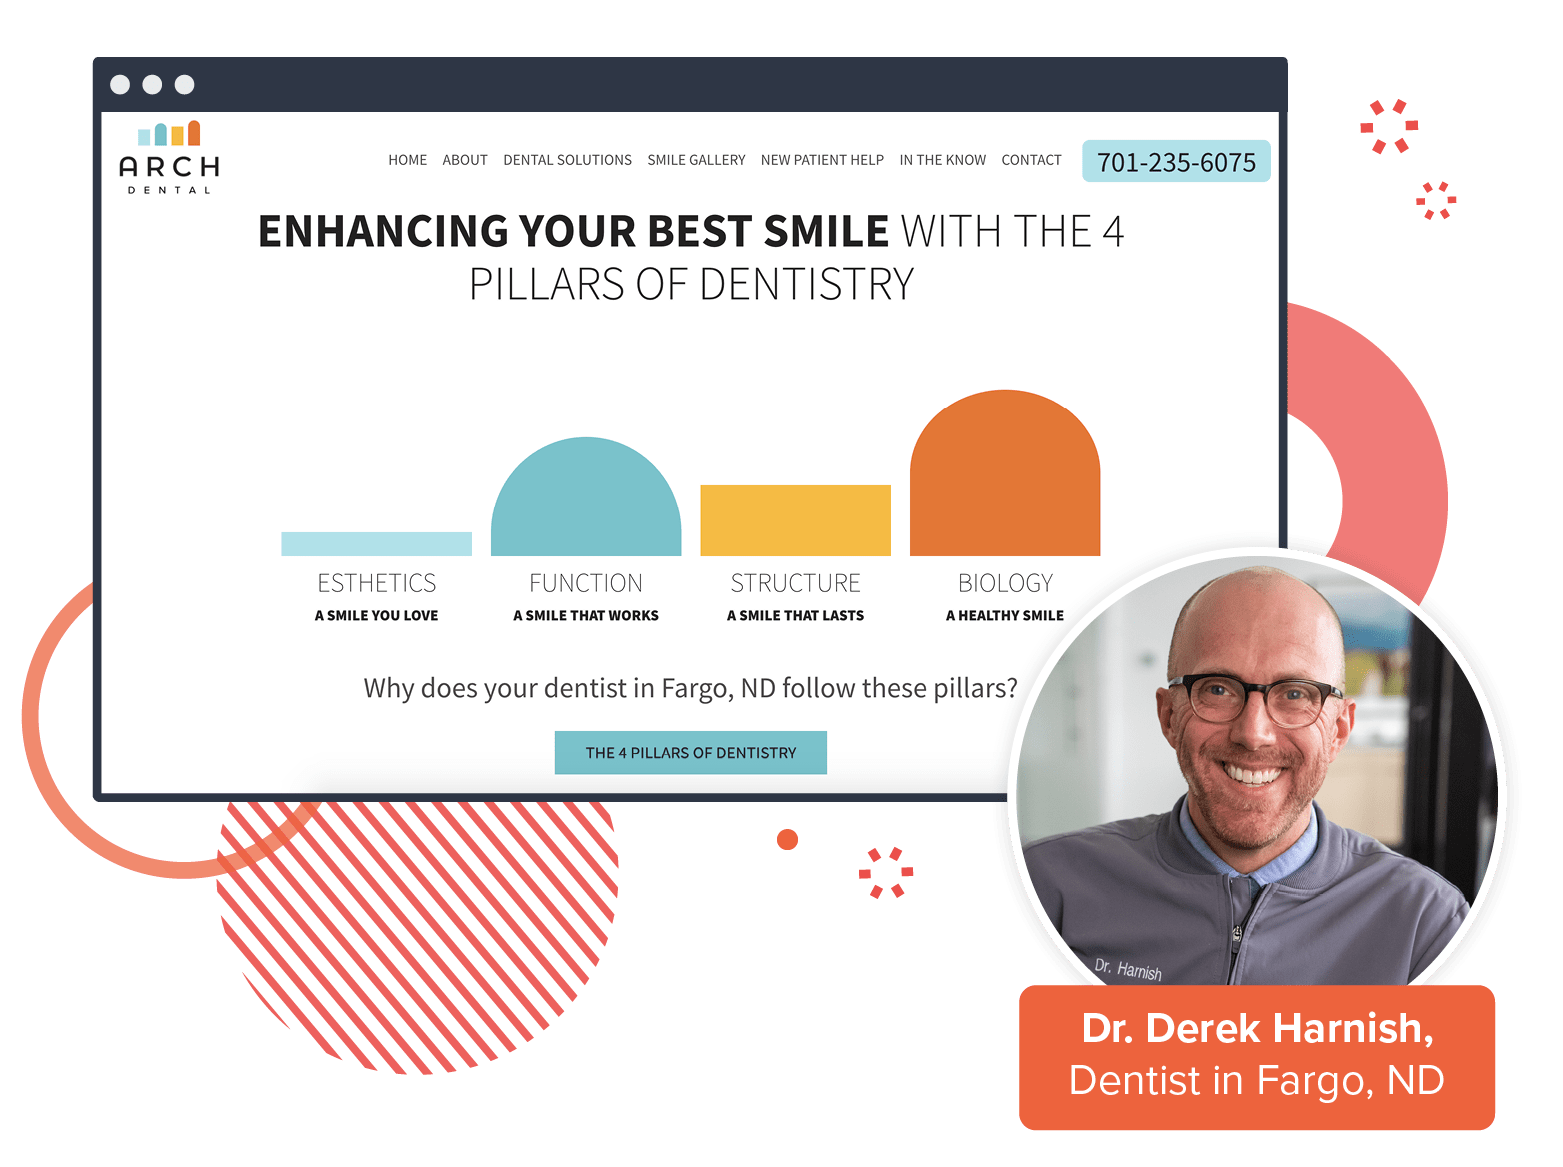 An example webpage from Arch Dental with the doctor's face in the corner